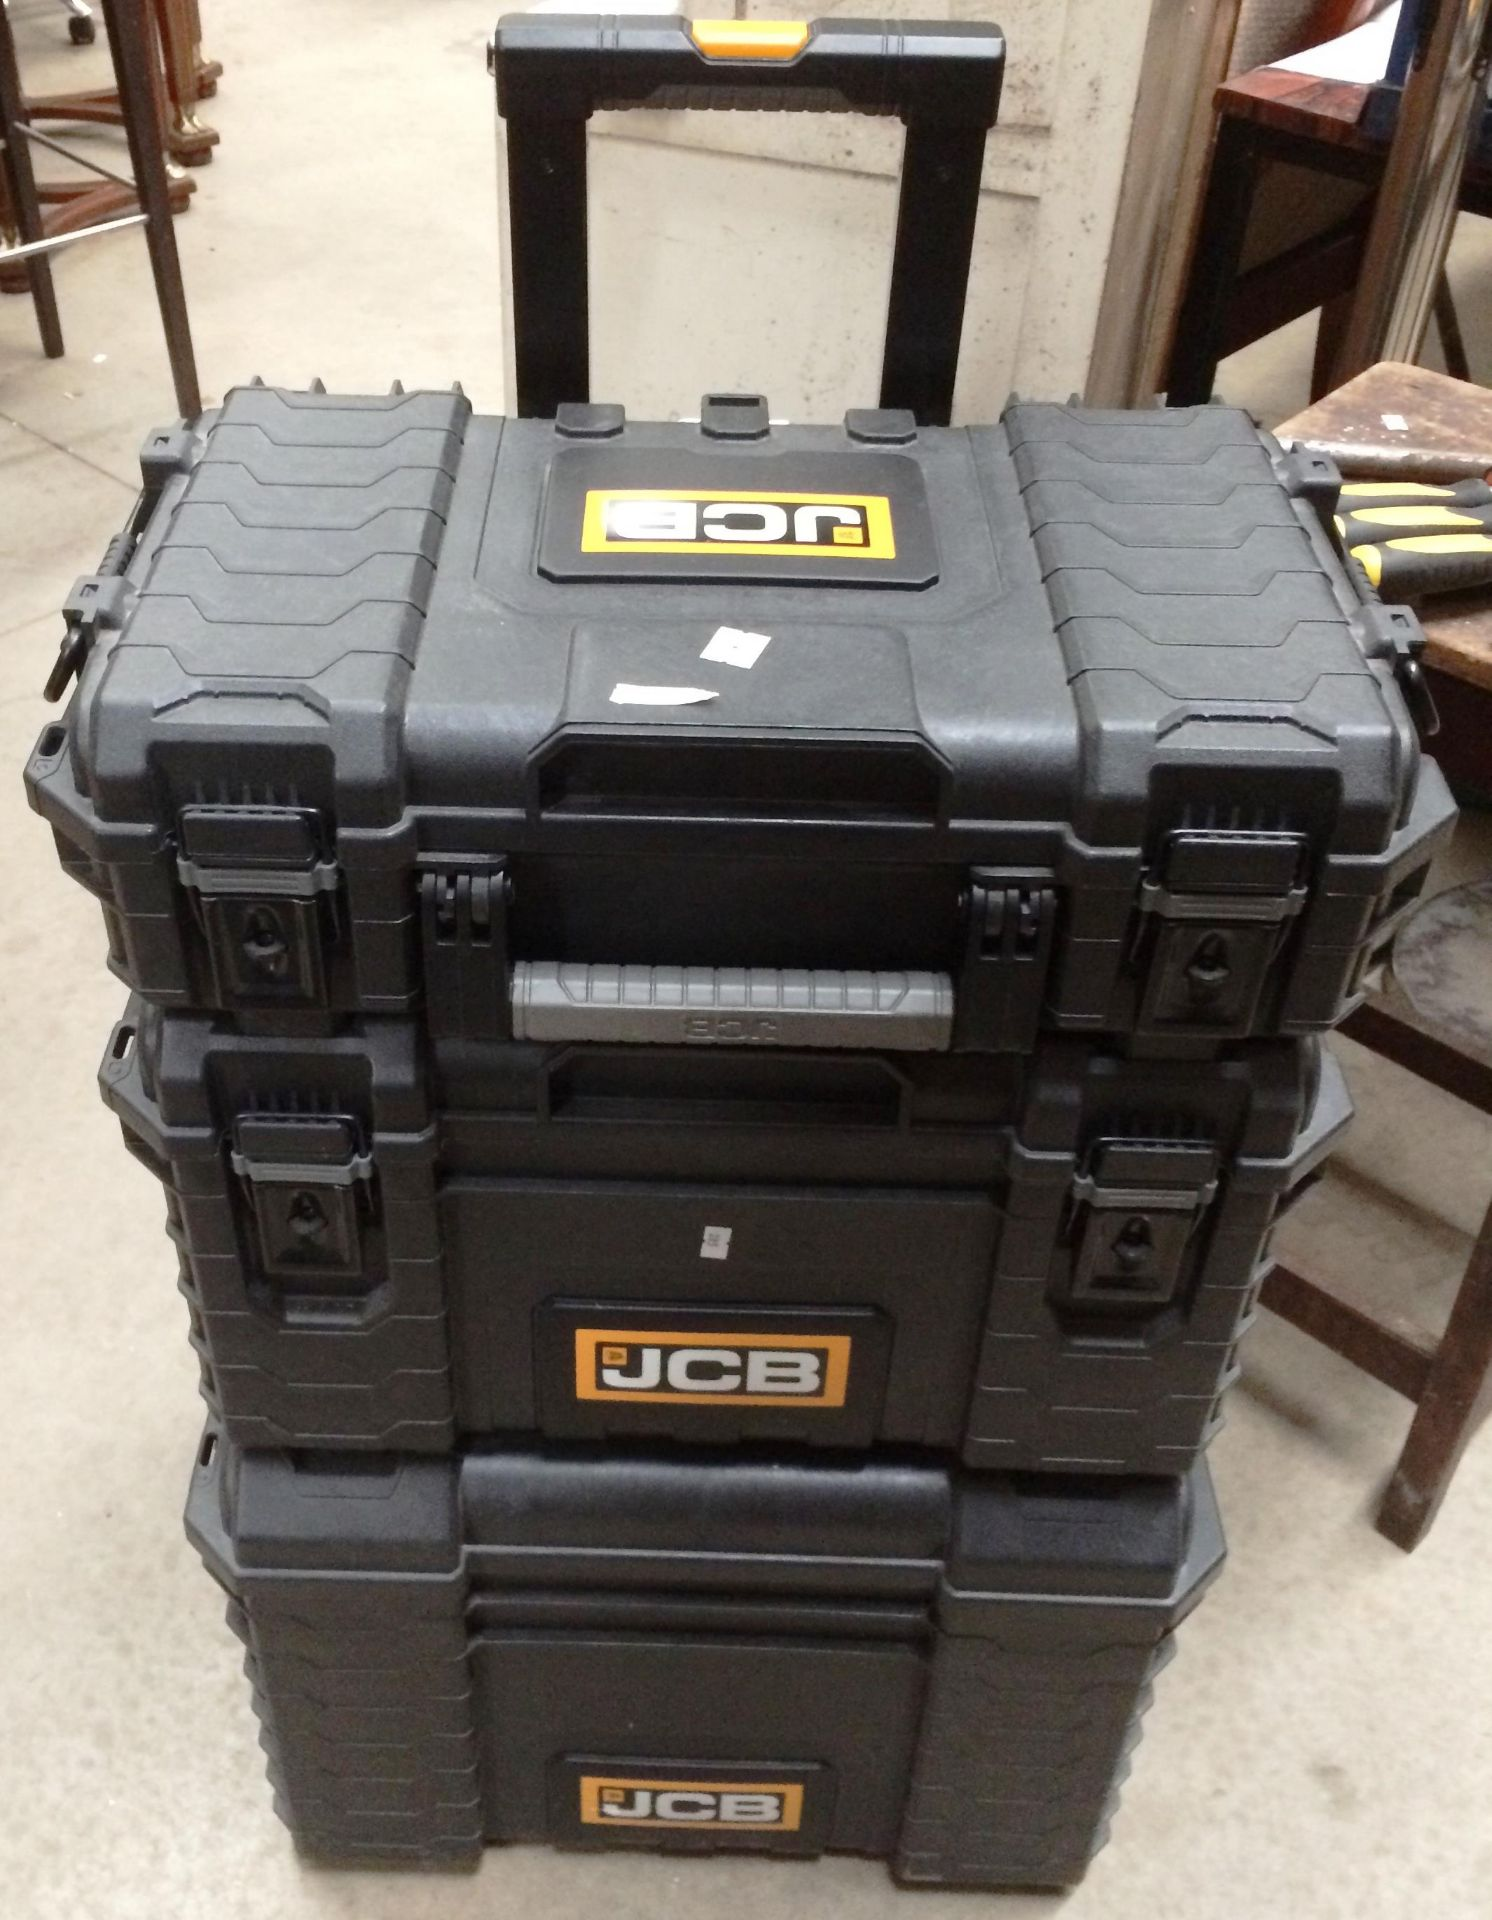 JCB three section stackable mobile tool box system